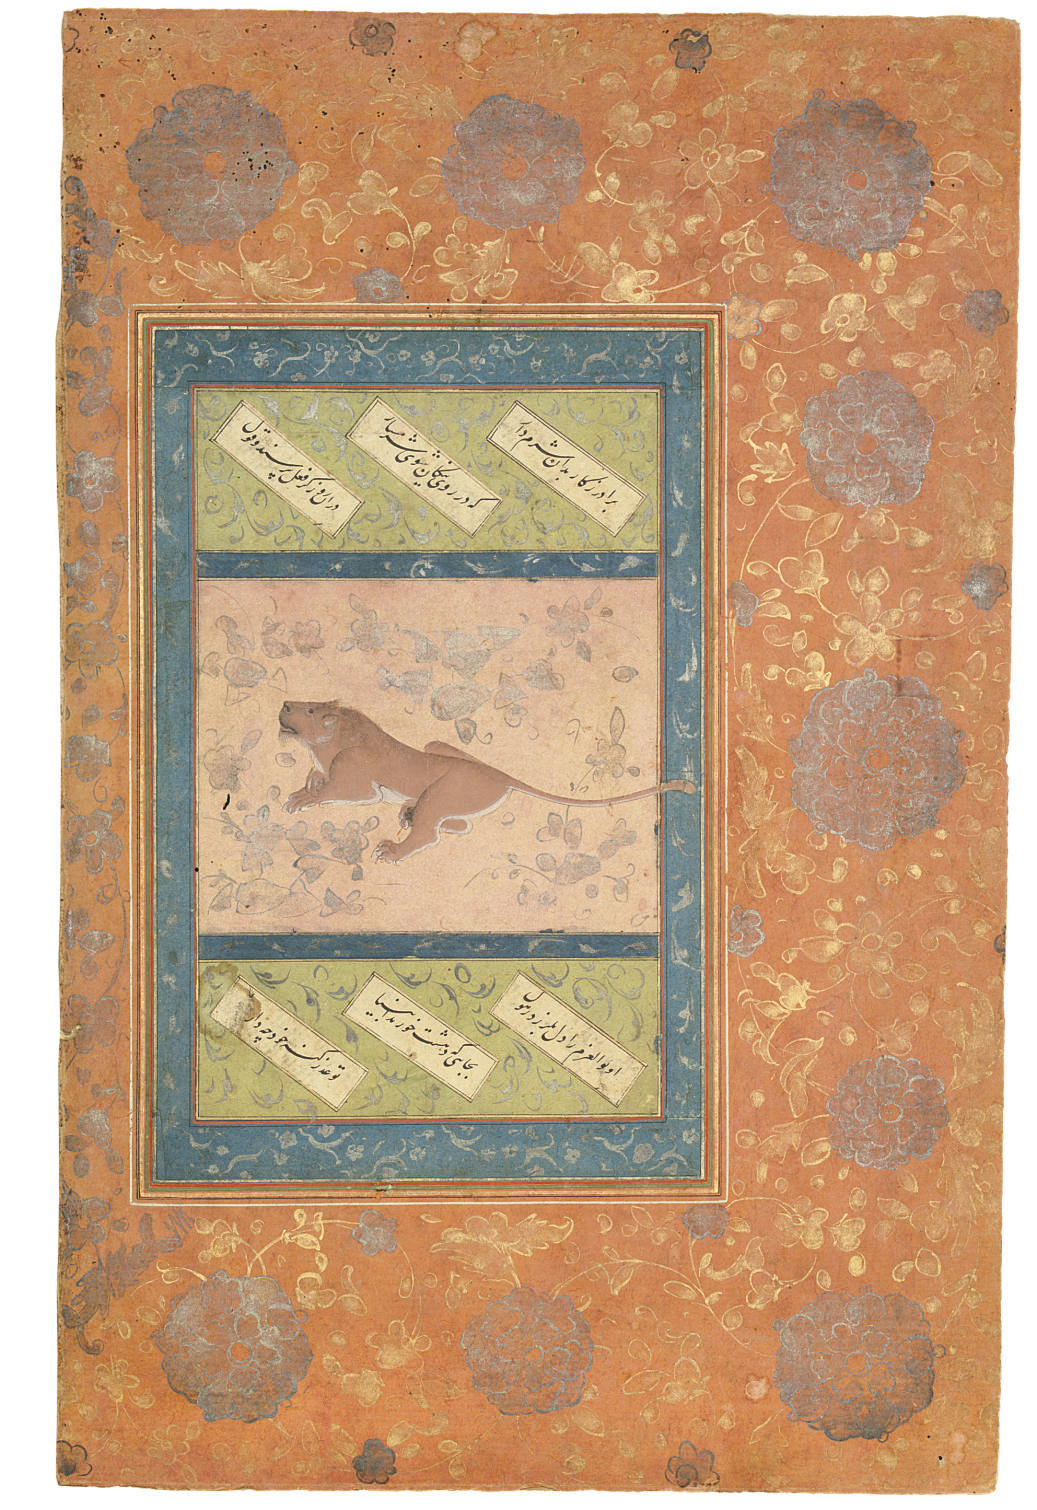 ALBUM PAGE WITH LION